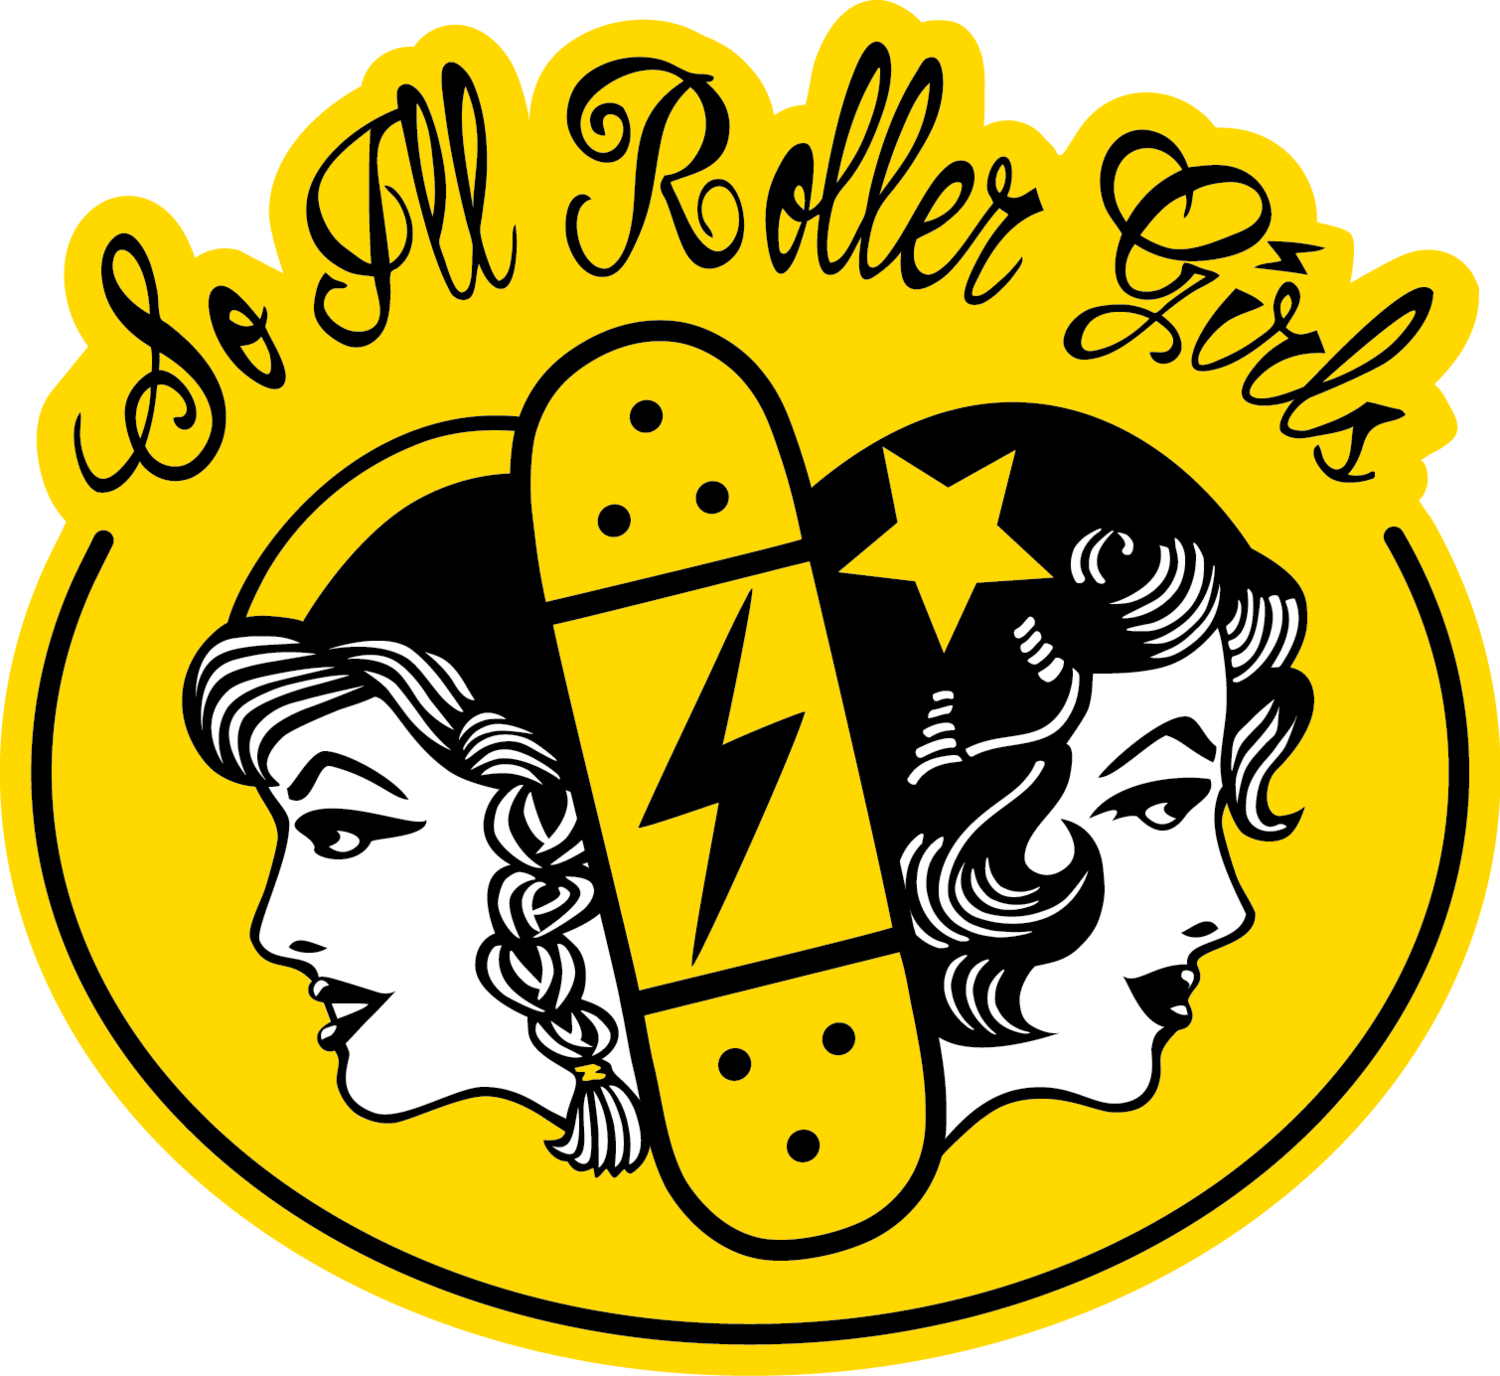 Southern Illinois Roller Girls